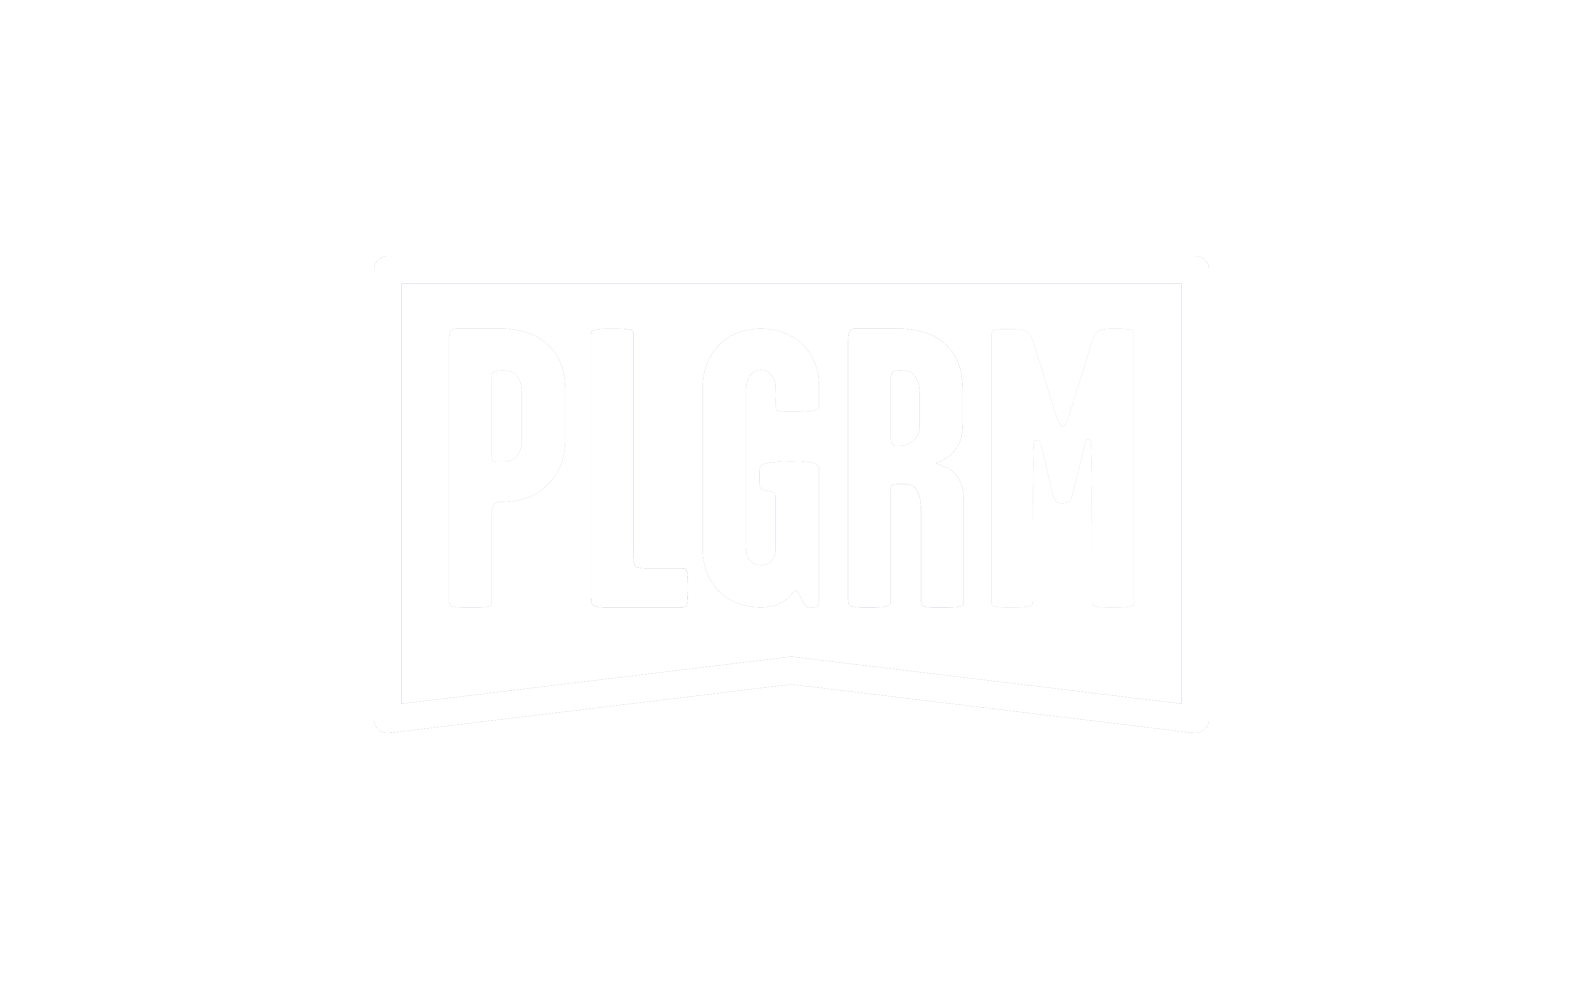 PLGRM White Logo 1 - Copy.png